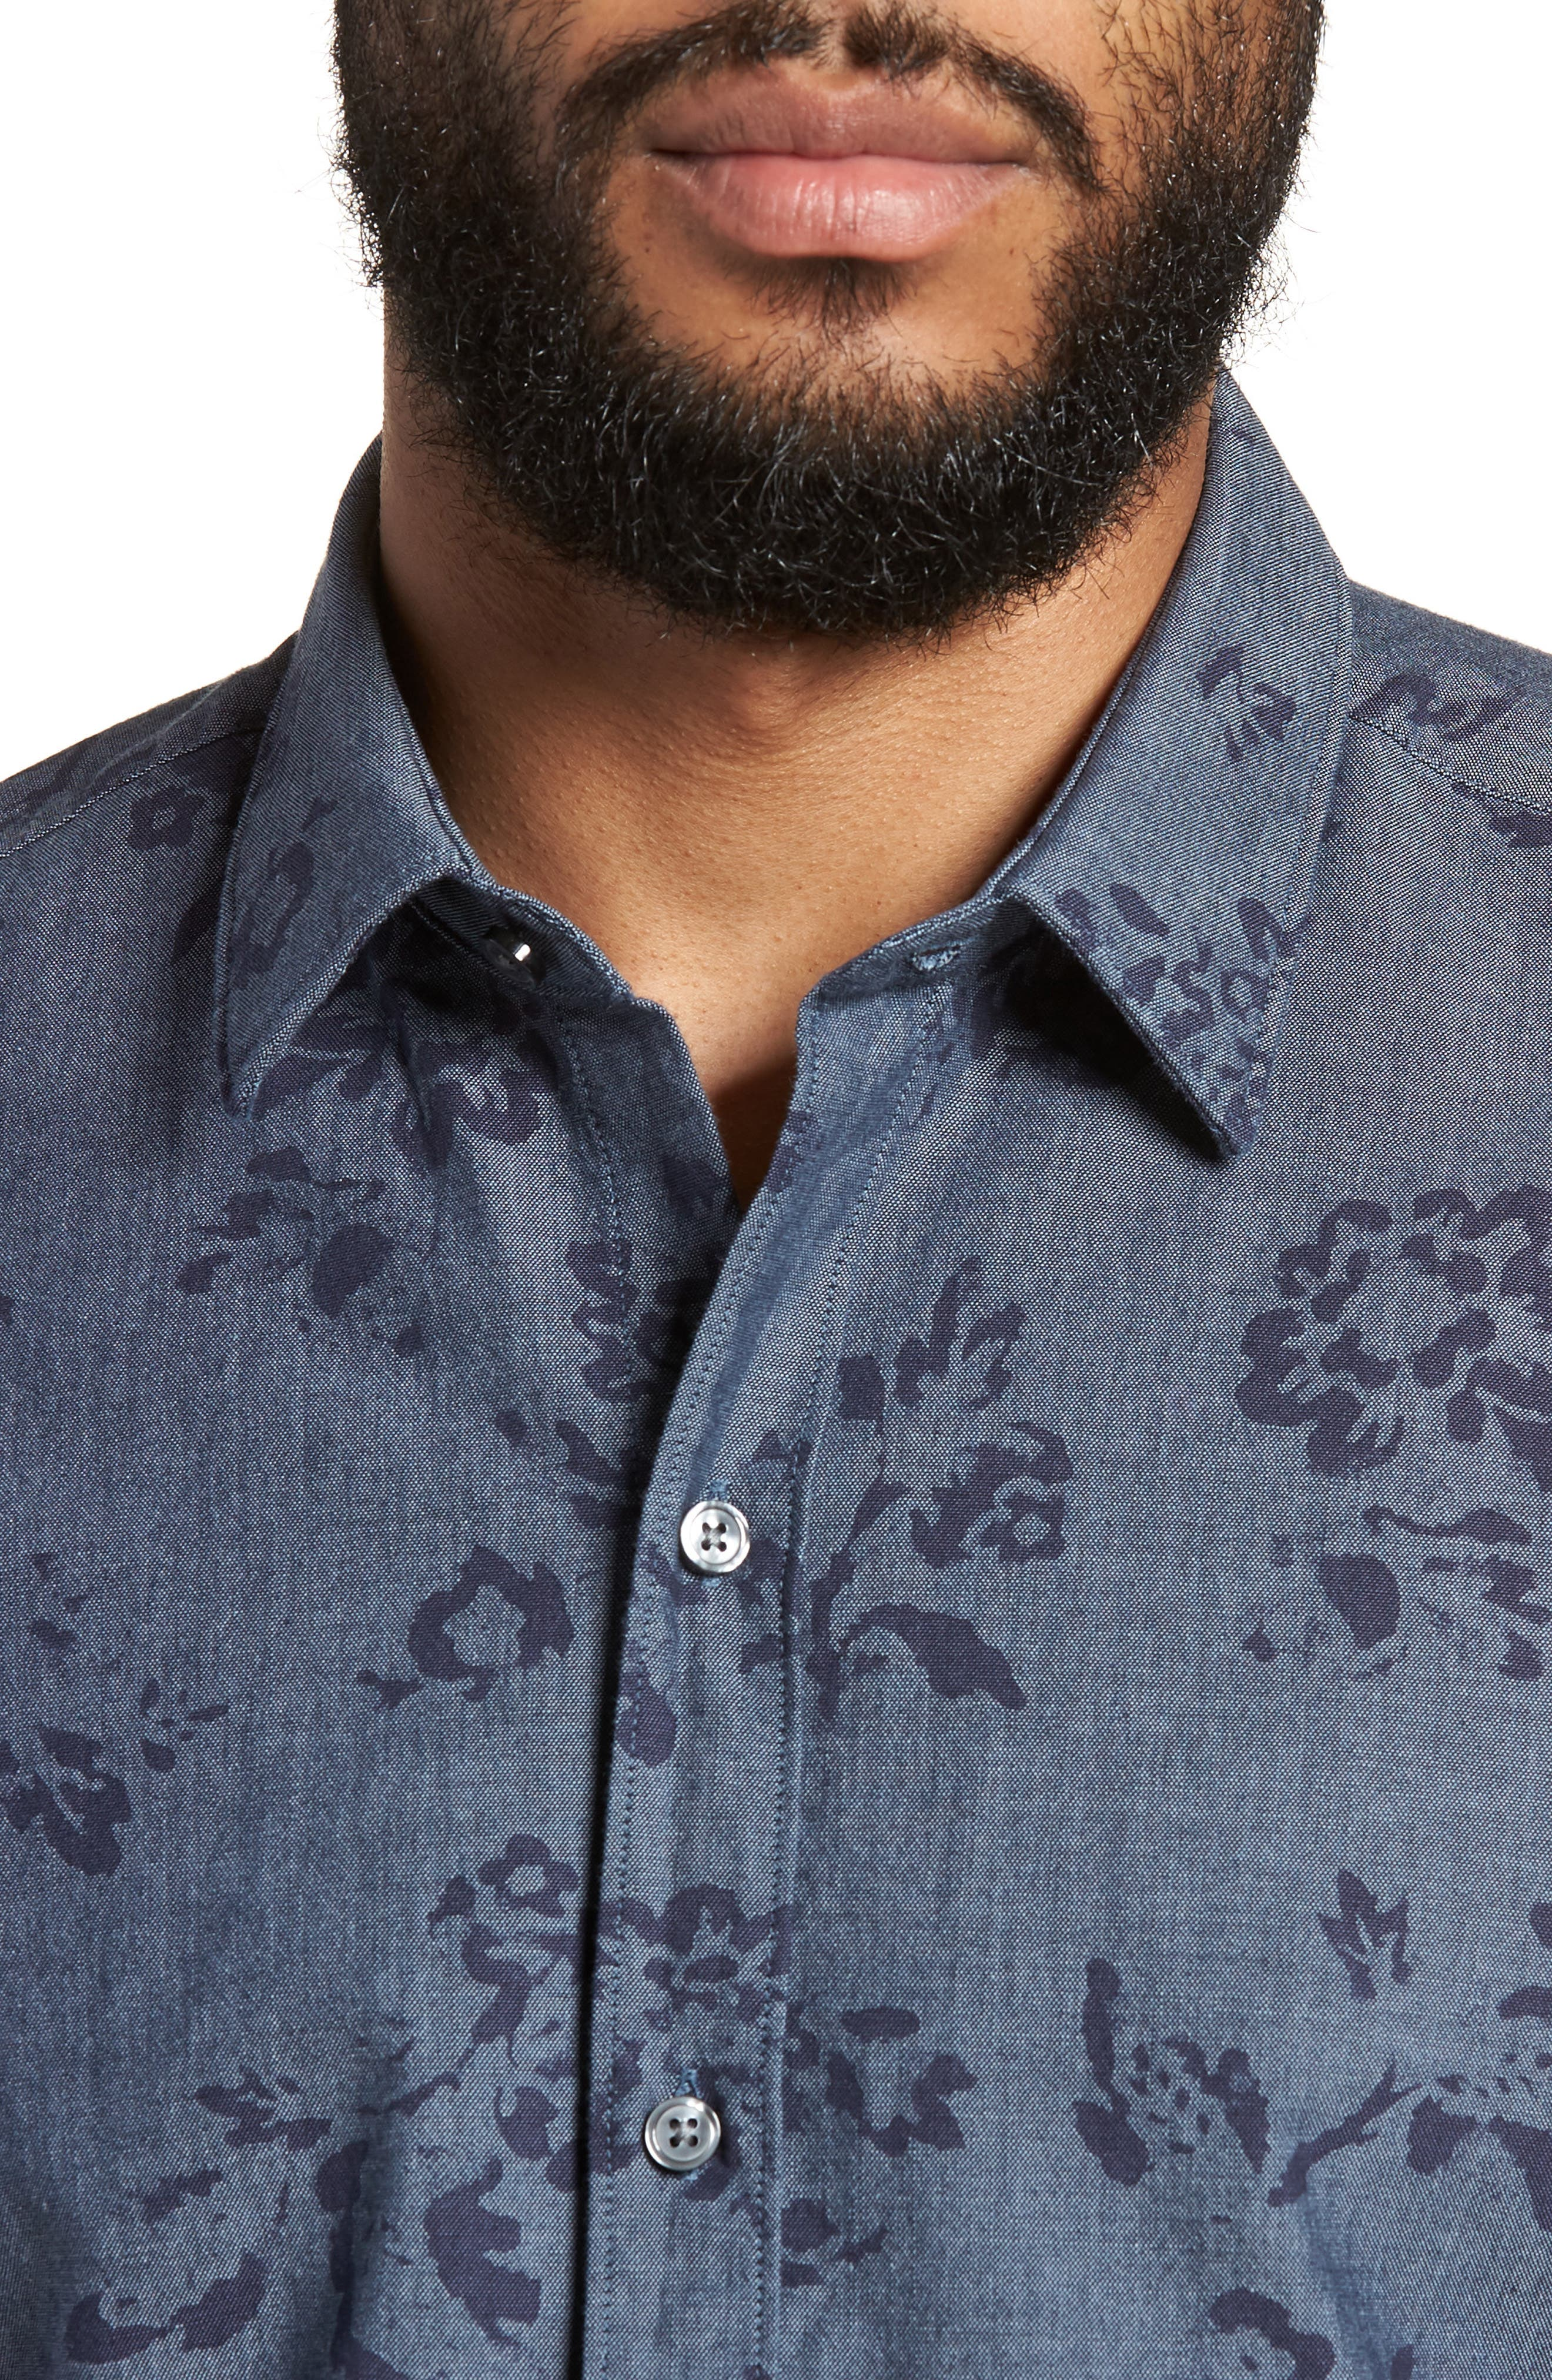 Robb Trim Fit Floral Short Sleeve Sport Shirt,                             Alternate thumbnail 4, color,                             Navy